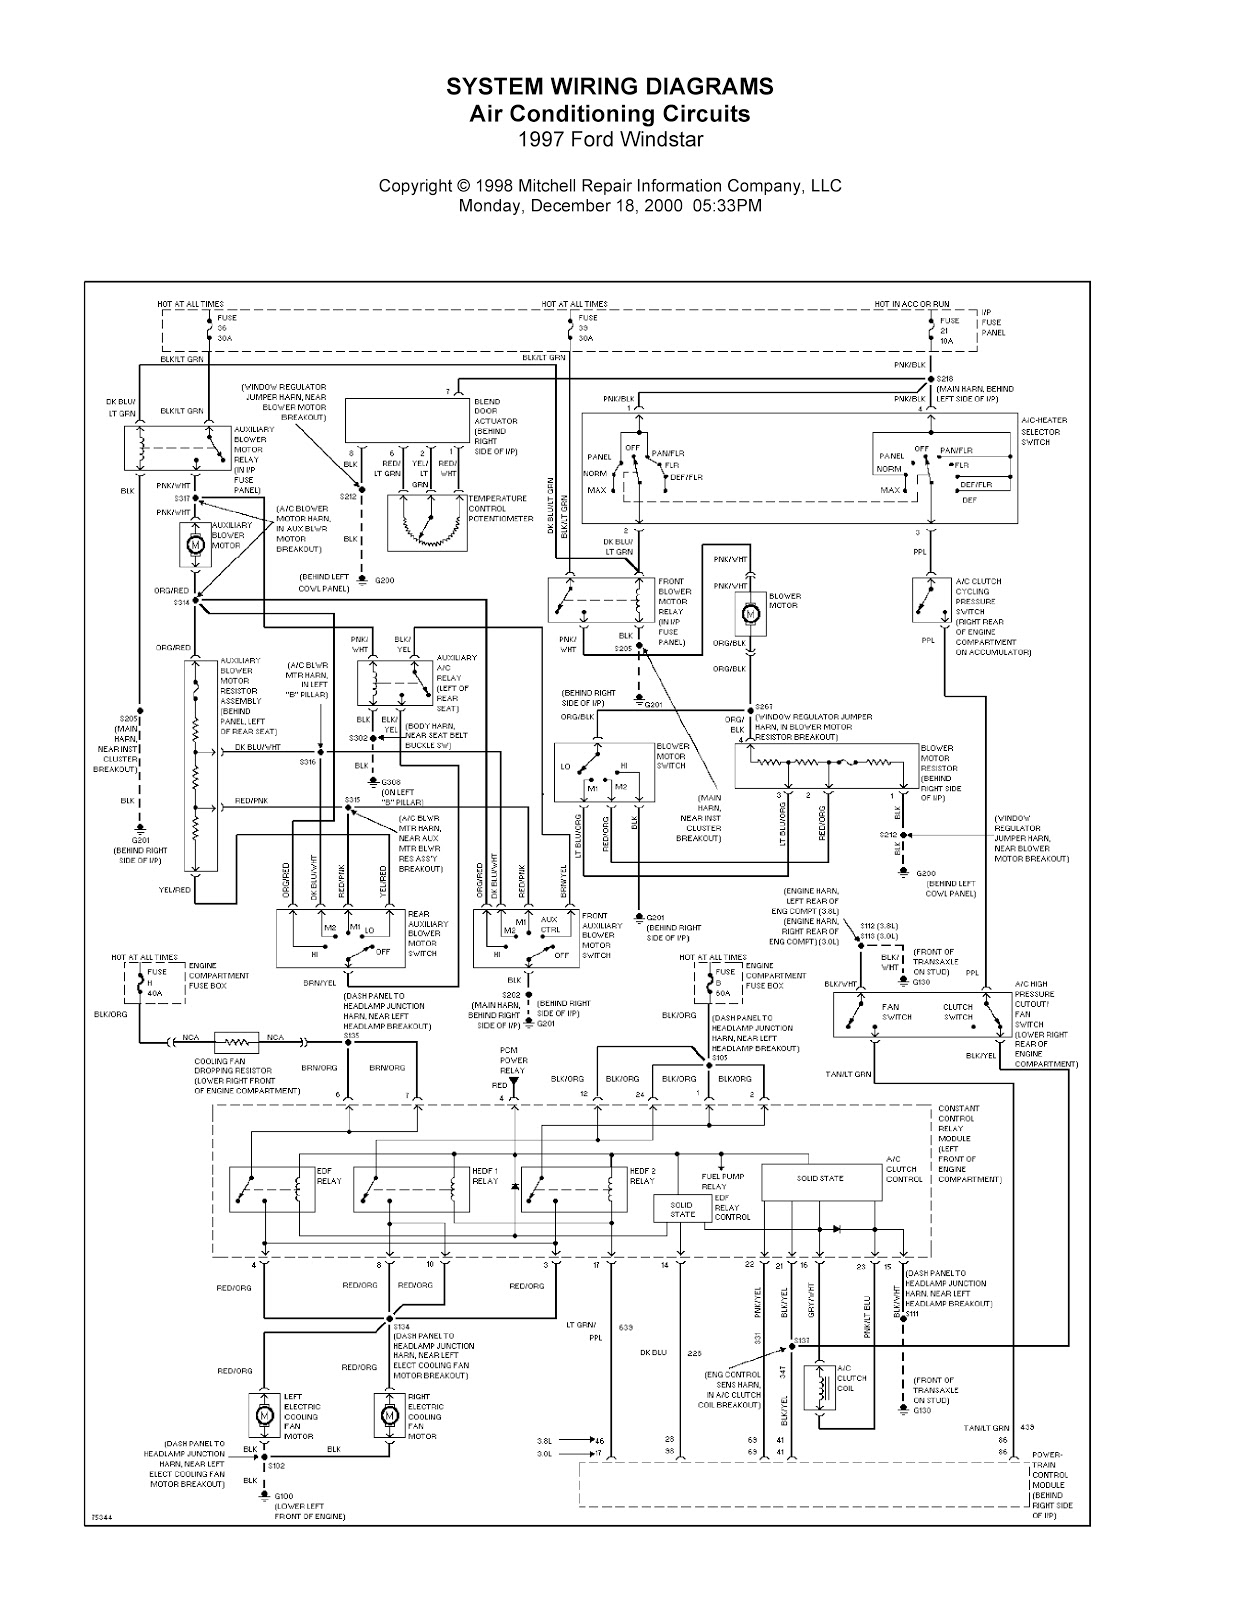 0001 1997 ford windstar complete system wiring diagrams wiring 1998 Ford Explorer Engine Diagram at gsmx.co